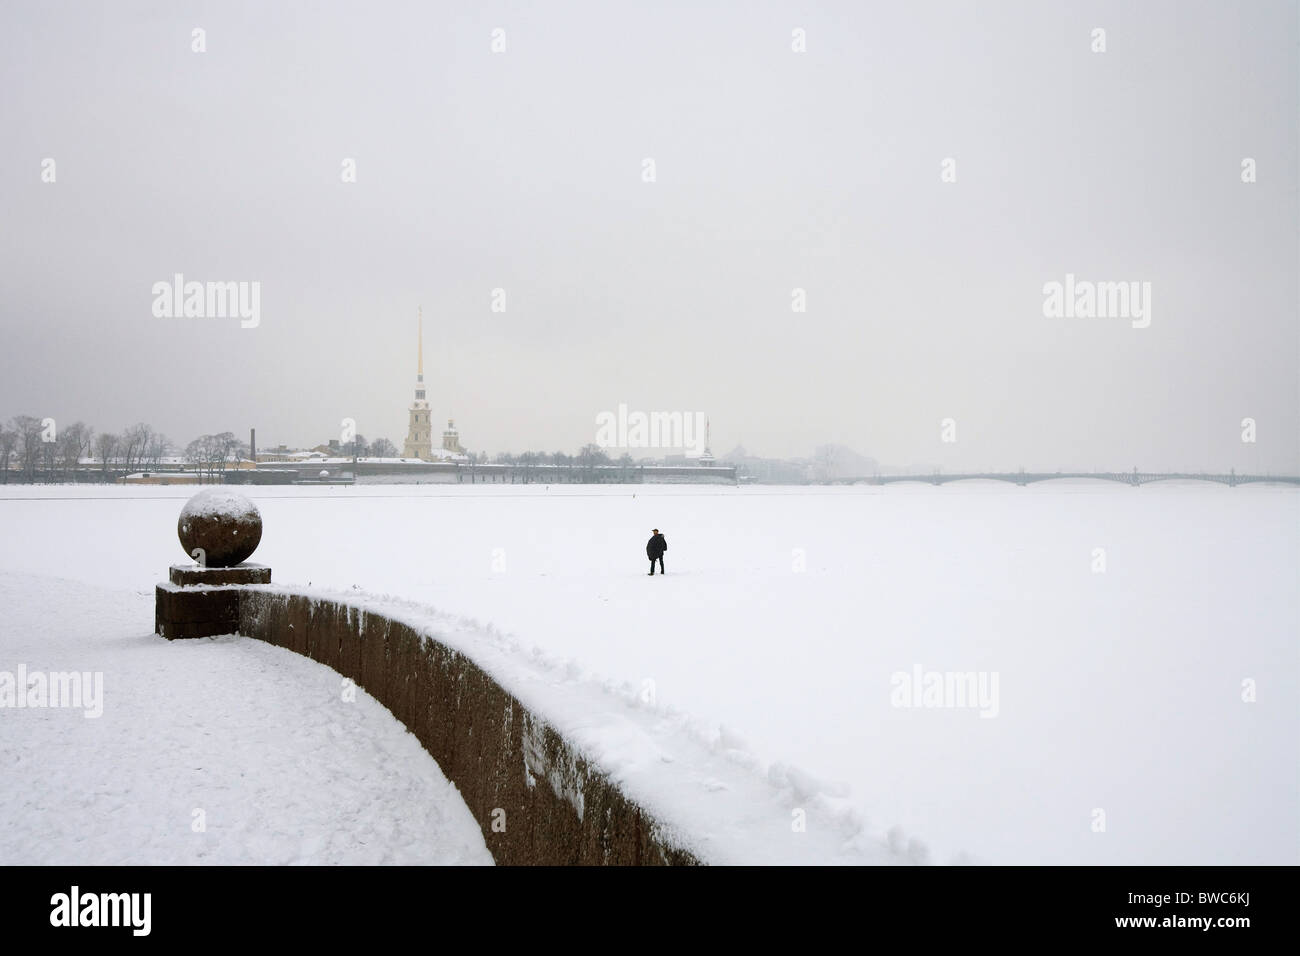 Man walking on the frozen Neva River, 'Peter and Paul Fortress' in background St Petersburg Russia - Stock Image